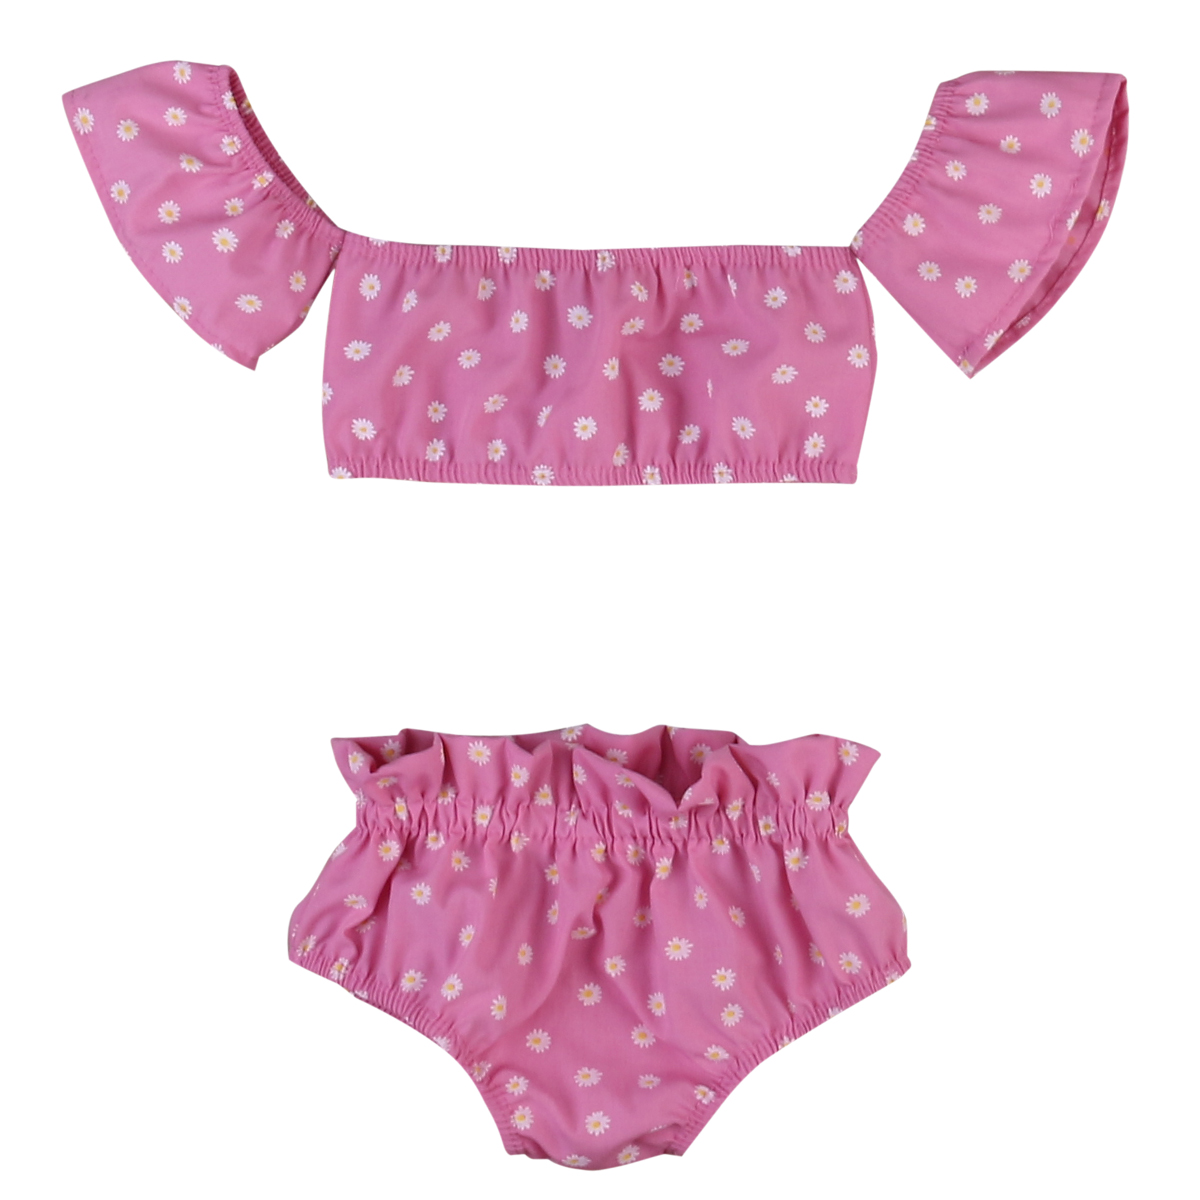 Helen115 Lovely Kids Baby Girls Summer Pink Floral Printed A Word Shoulder T-shirt+Shorts 0-4Years 05 lovely pink